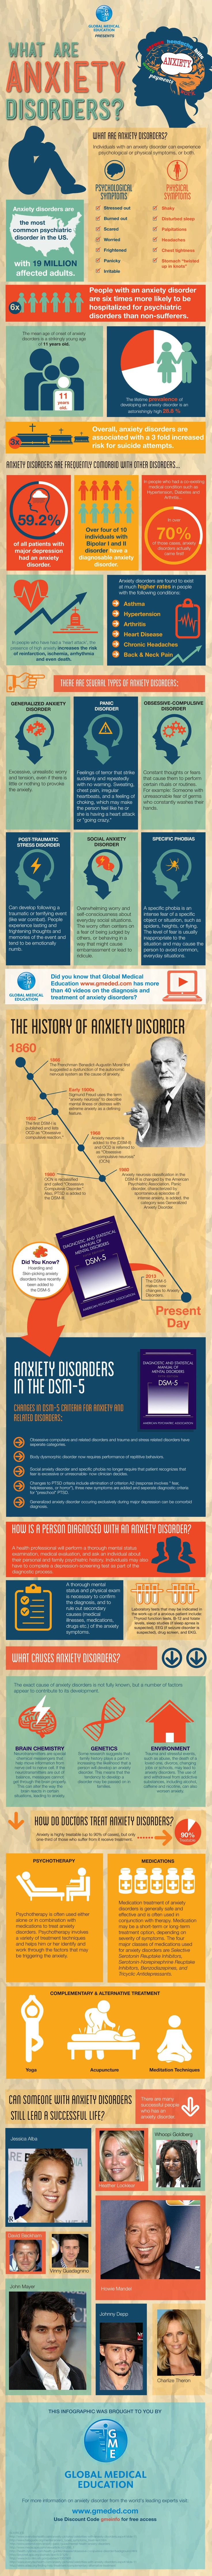 Just what are anxiety disorders anyway? Anxiety disorders are the commonest psychiatric illnesses globally. And while there is no cure for anxiety disorders, there are very effective treatments available with a good evidence base. #WhatIsAPanicAttack